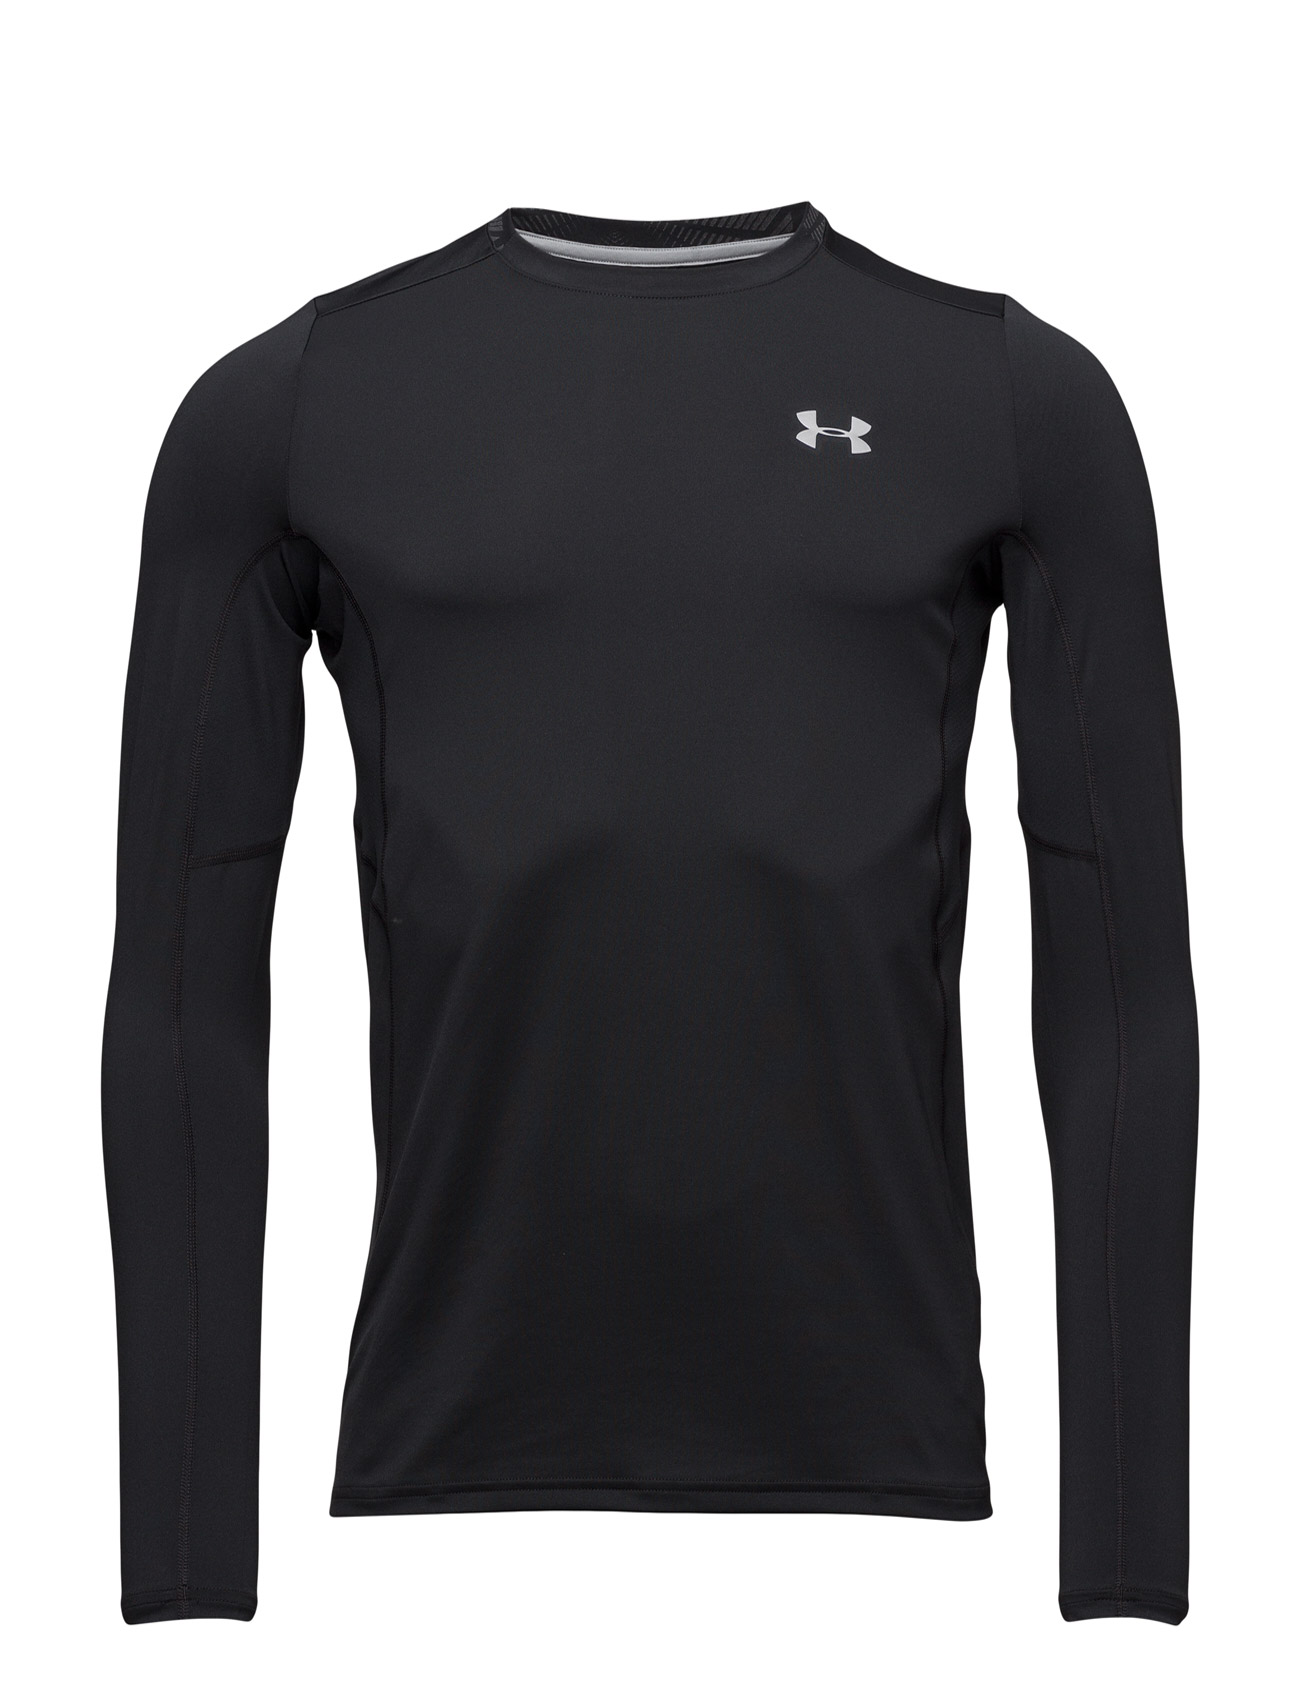 Ua Kryo Run Longsleeve Under Armour Sports toppe til Mænd i